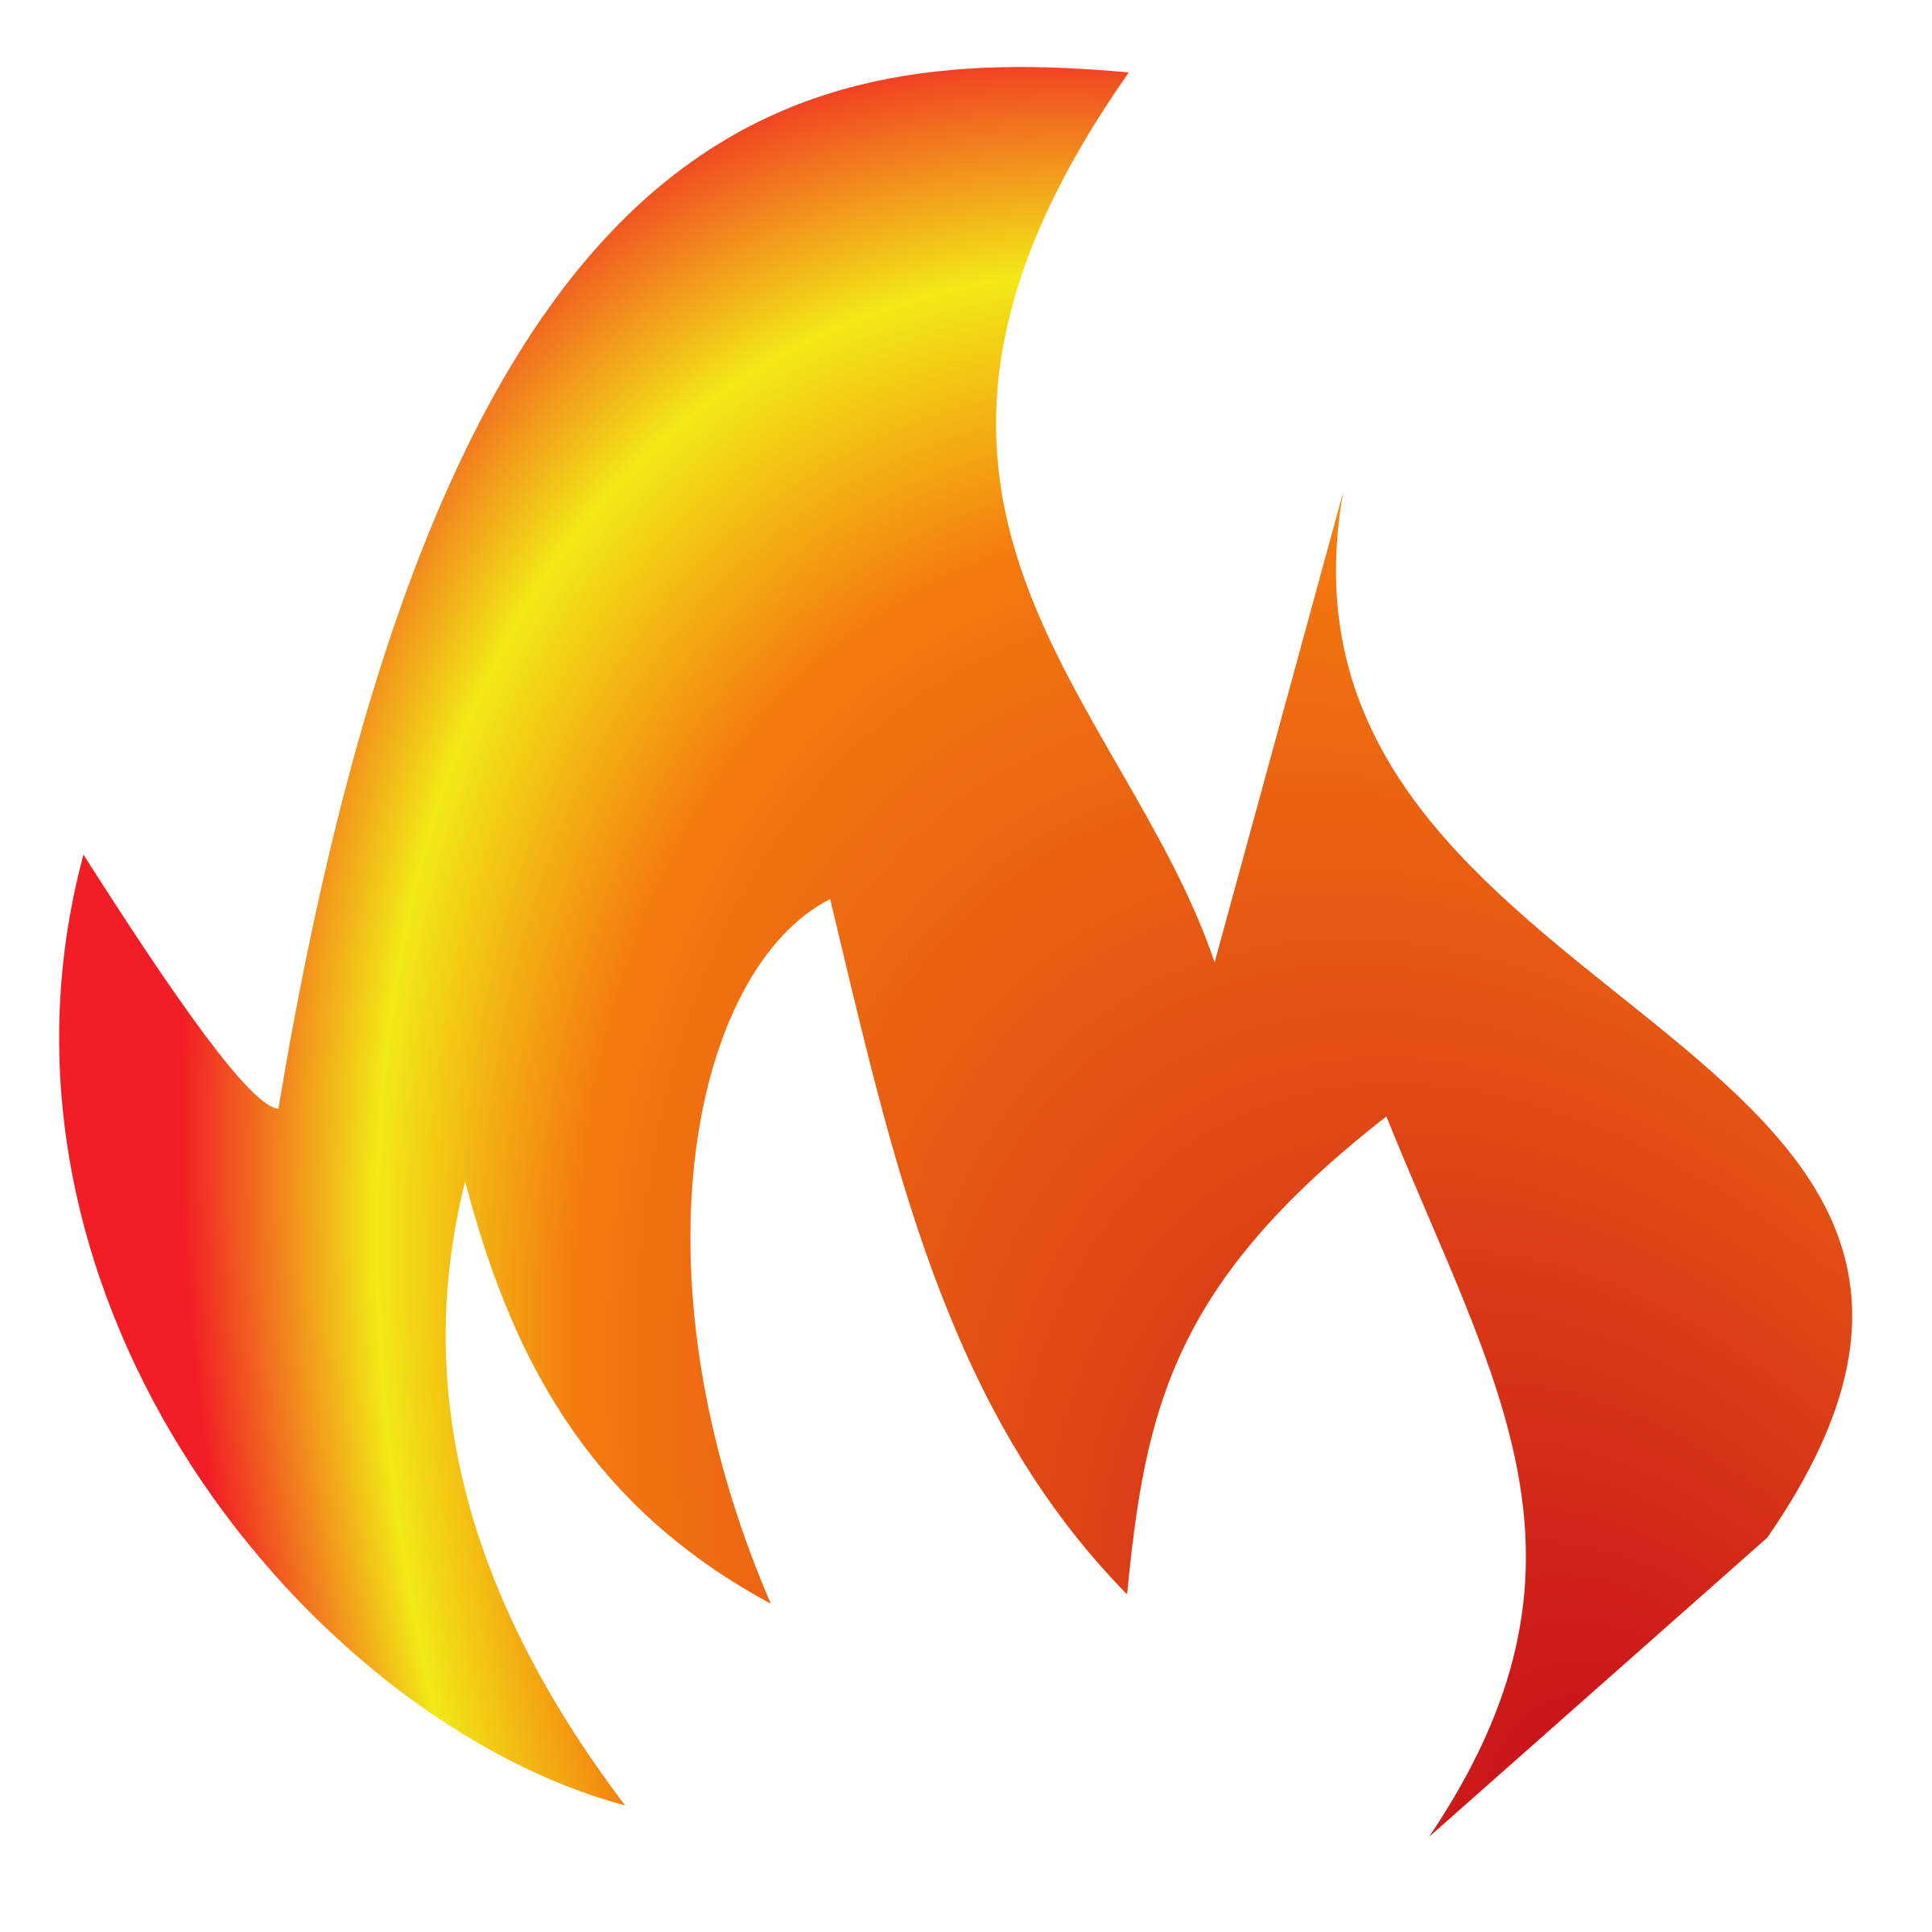 Fireplace clipart log in. Fire symbols clip art